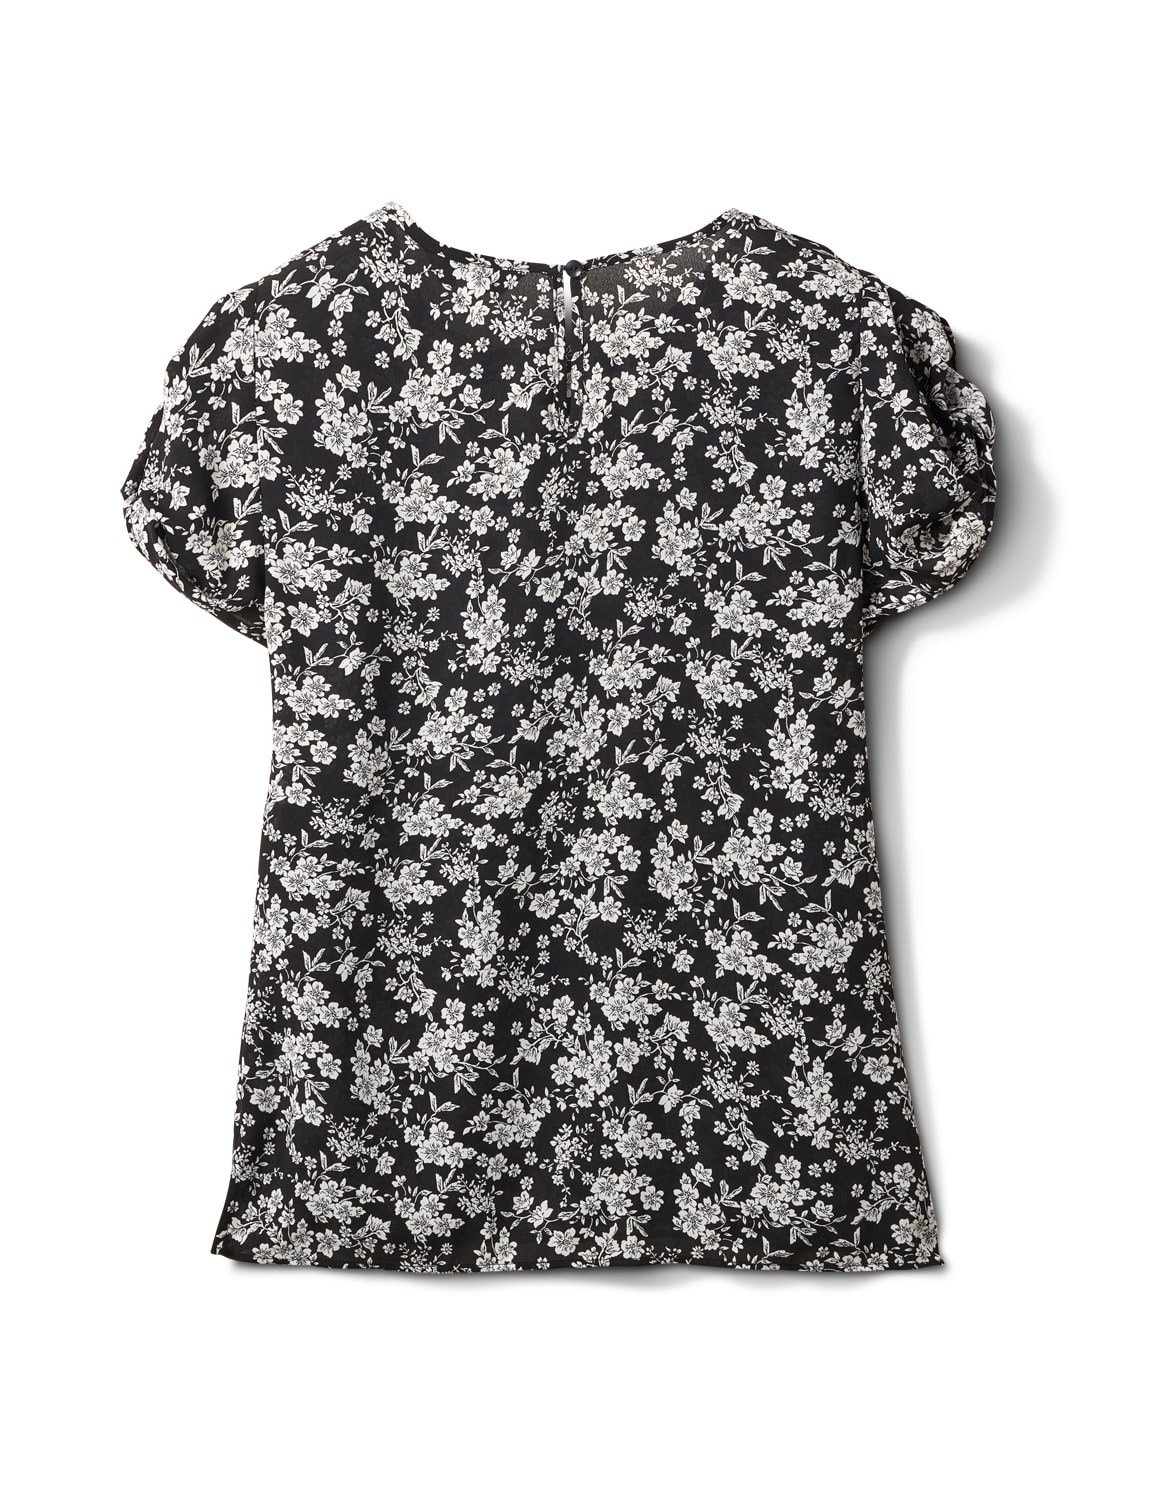 Keyhole Back White and Black Floral Blouse - White Black Floral - Back